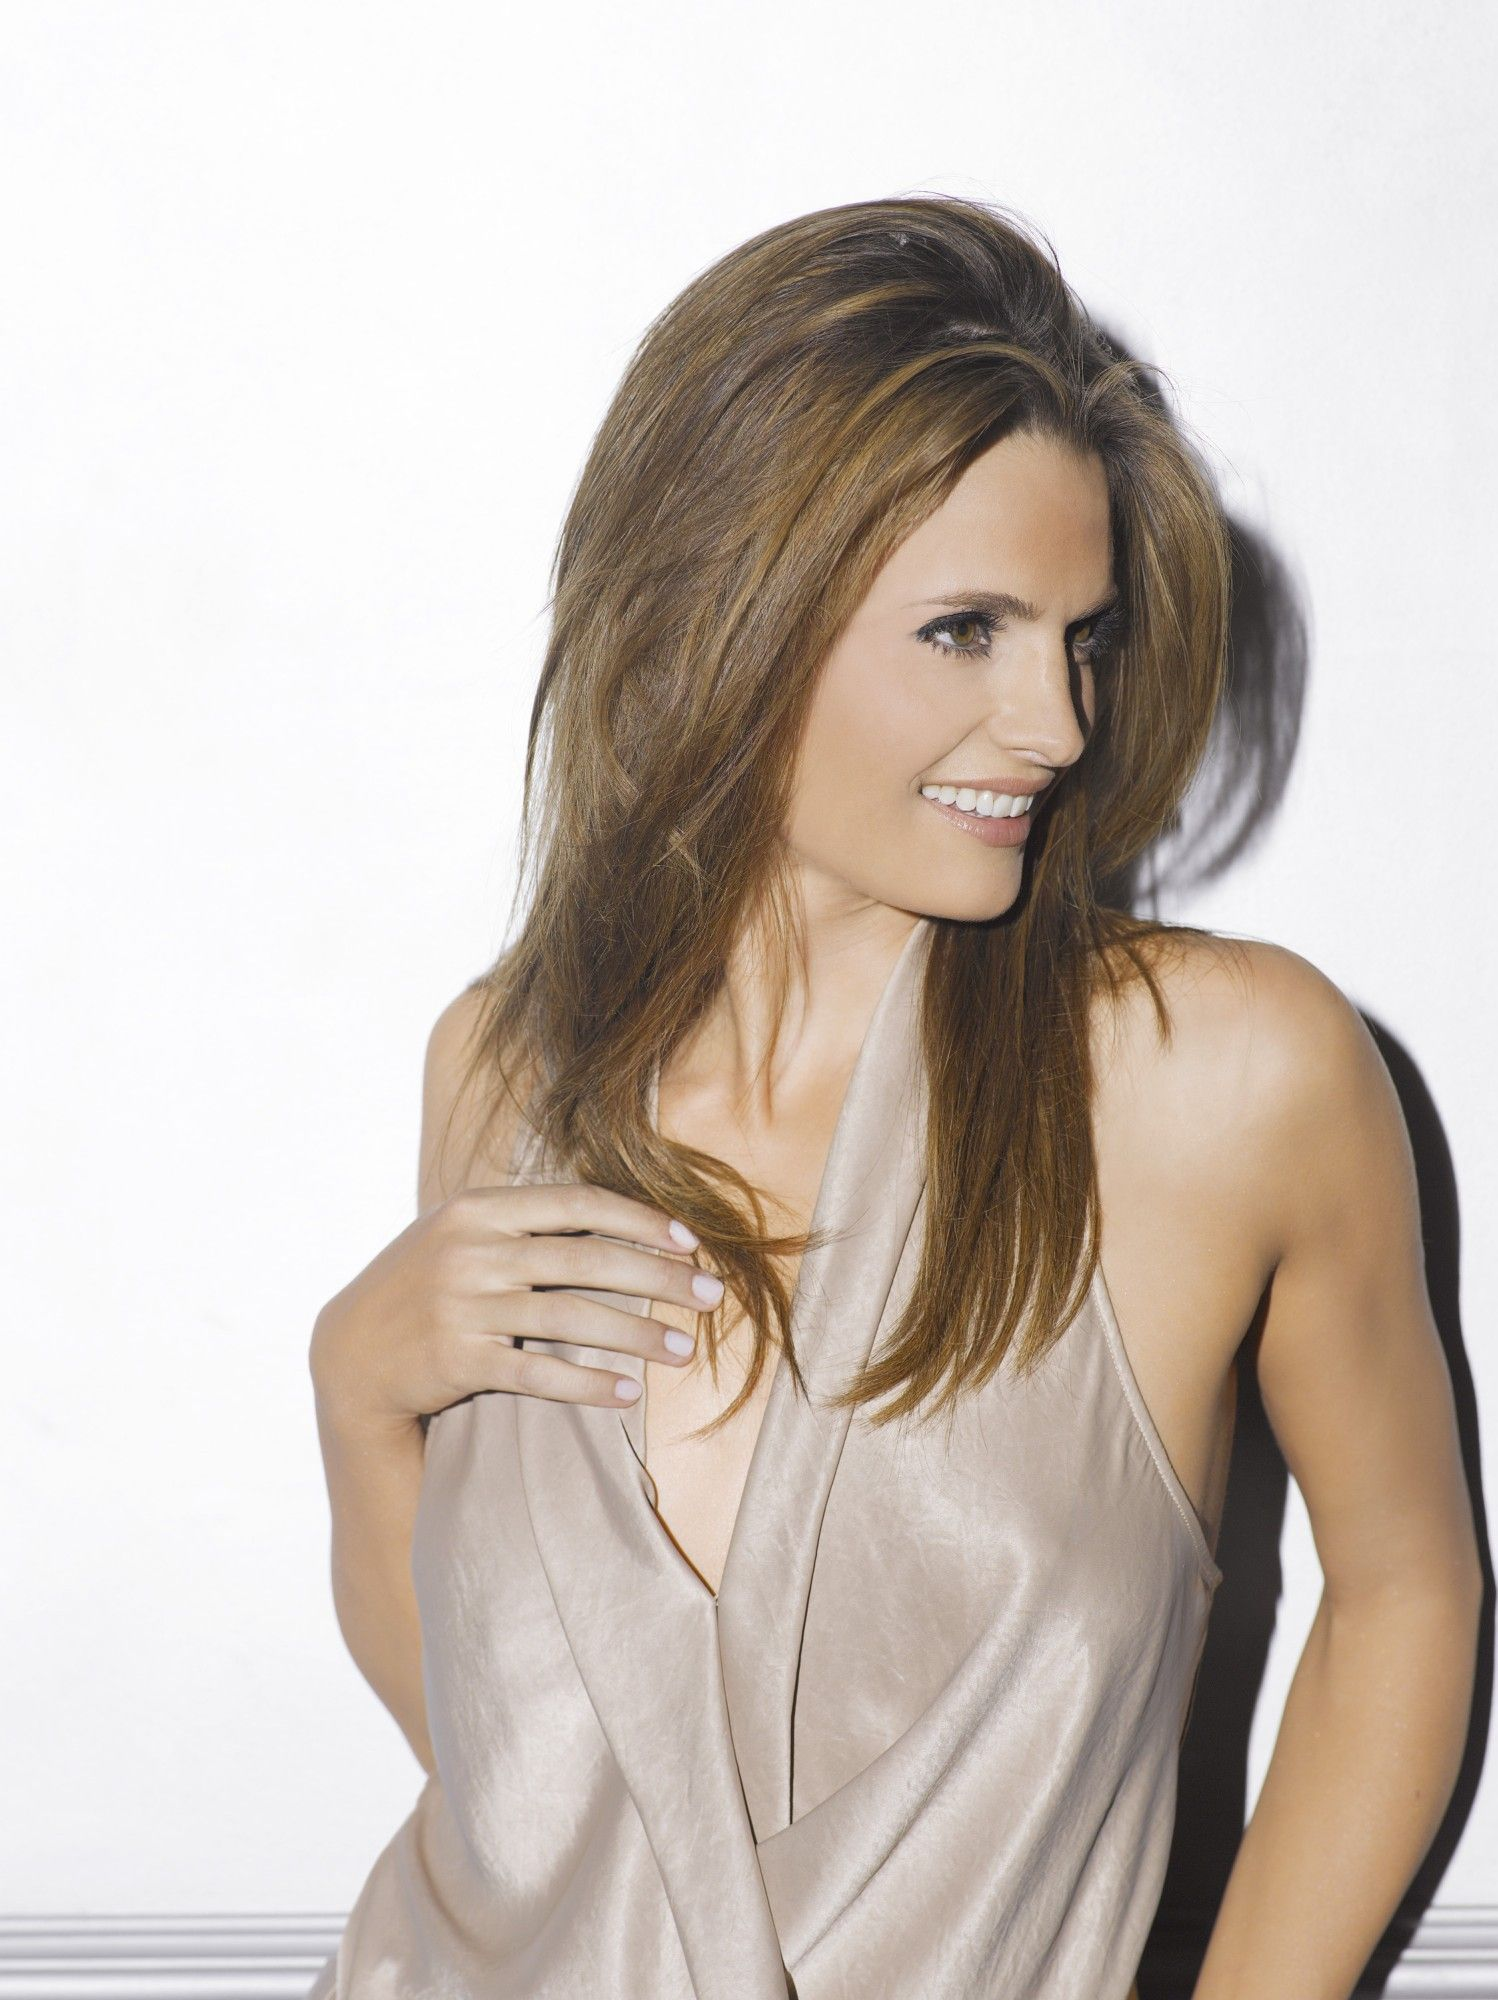 Ally Walker Hot Pics always perfect stana katic | stana katic, castle tv series